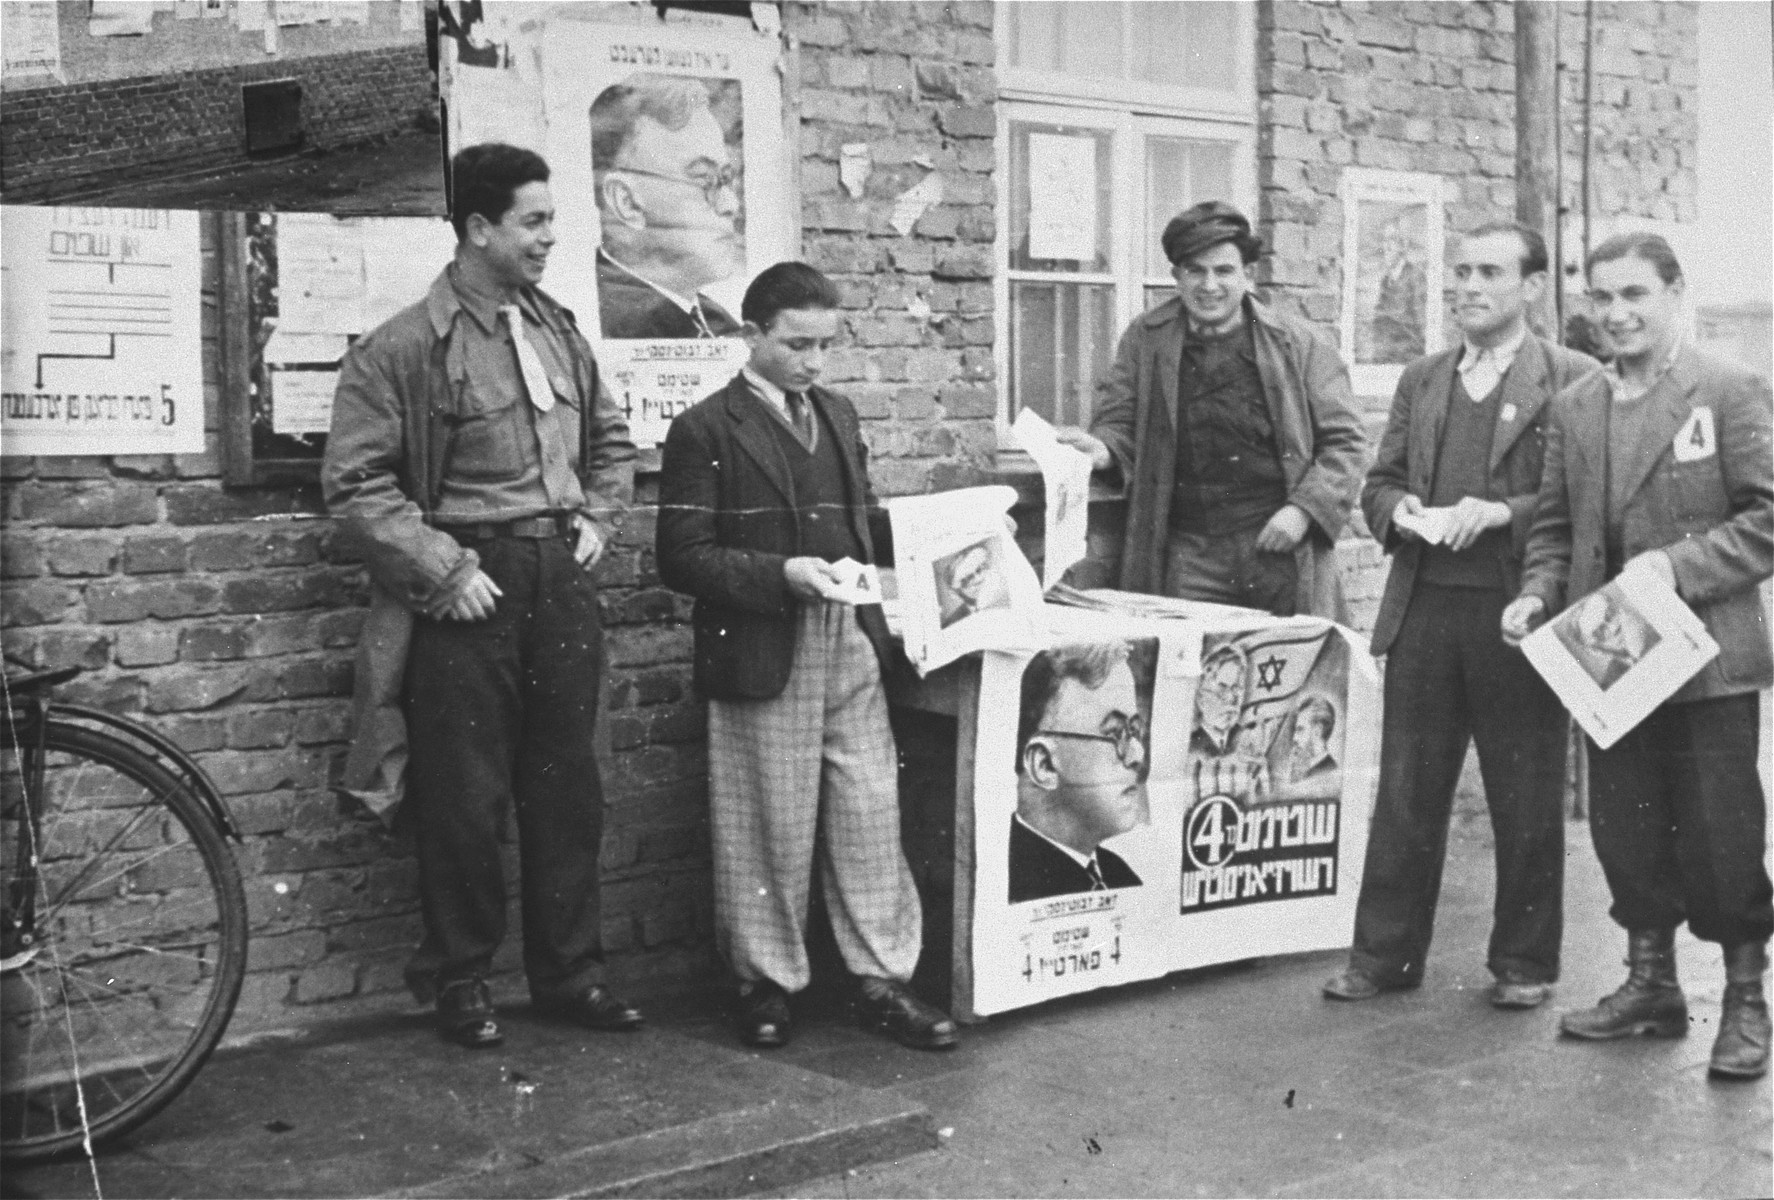 Election committee members distribute campaign posters in the Zeilsheim displaced persons' camp.